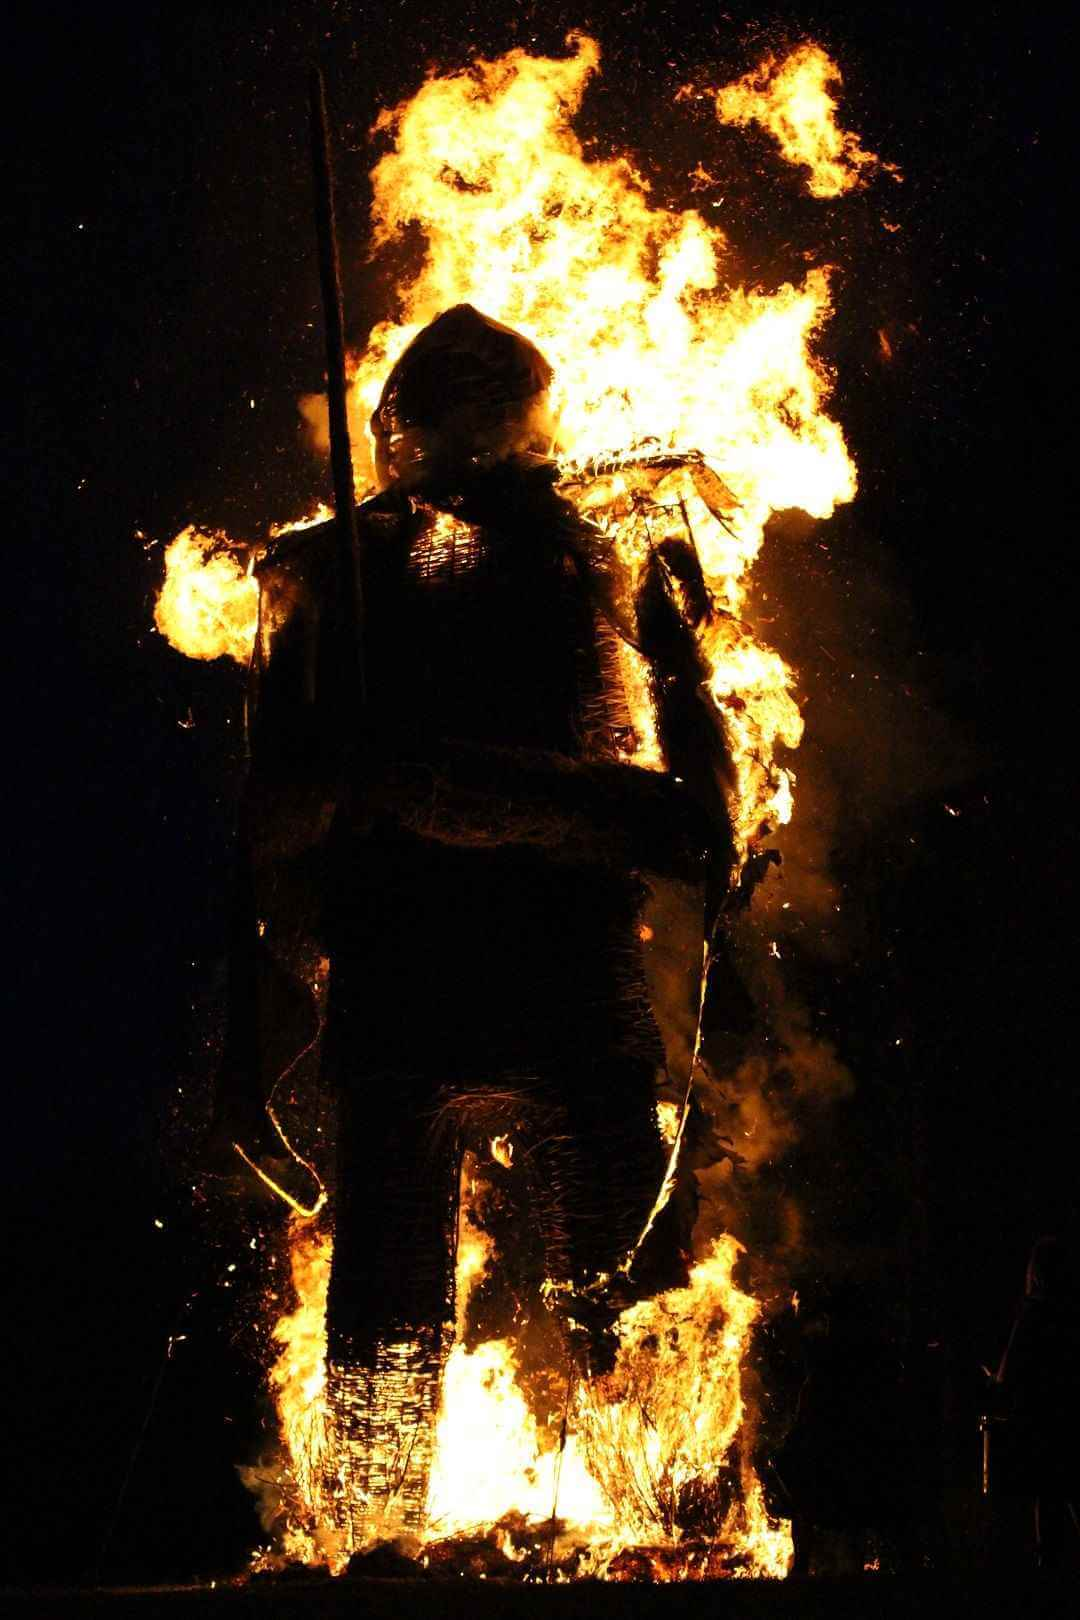 The burning Wicker Man covered in flames.